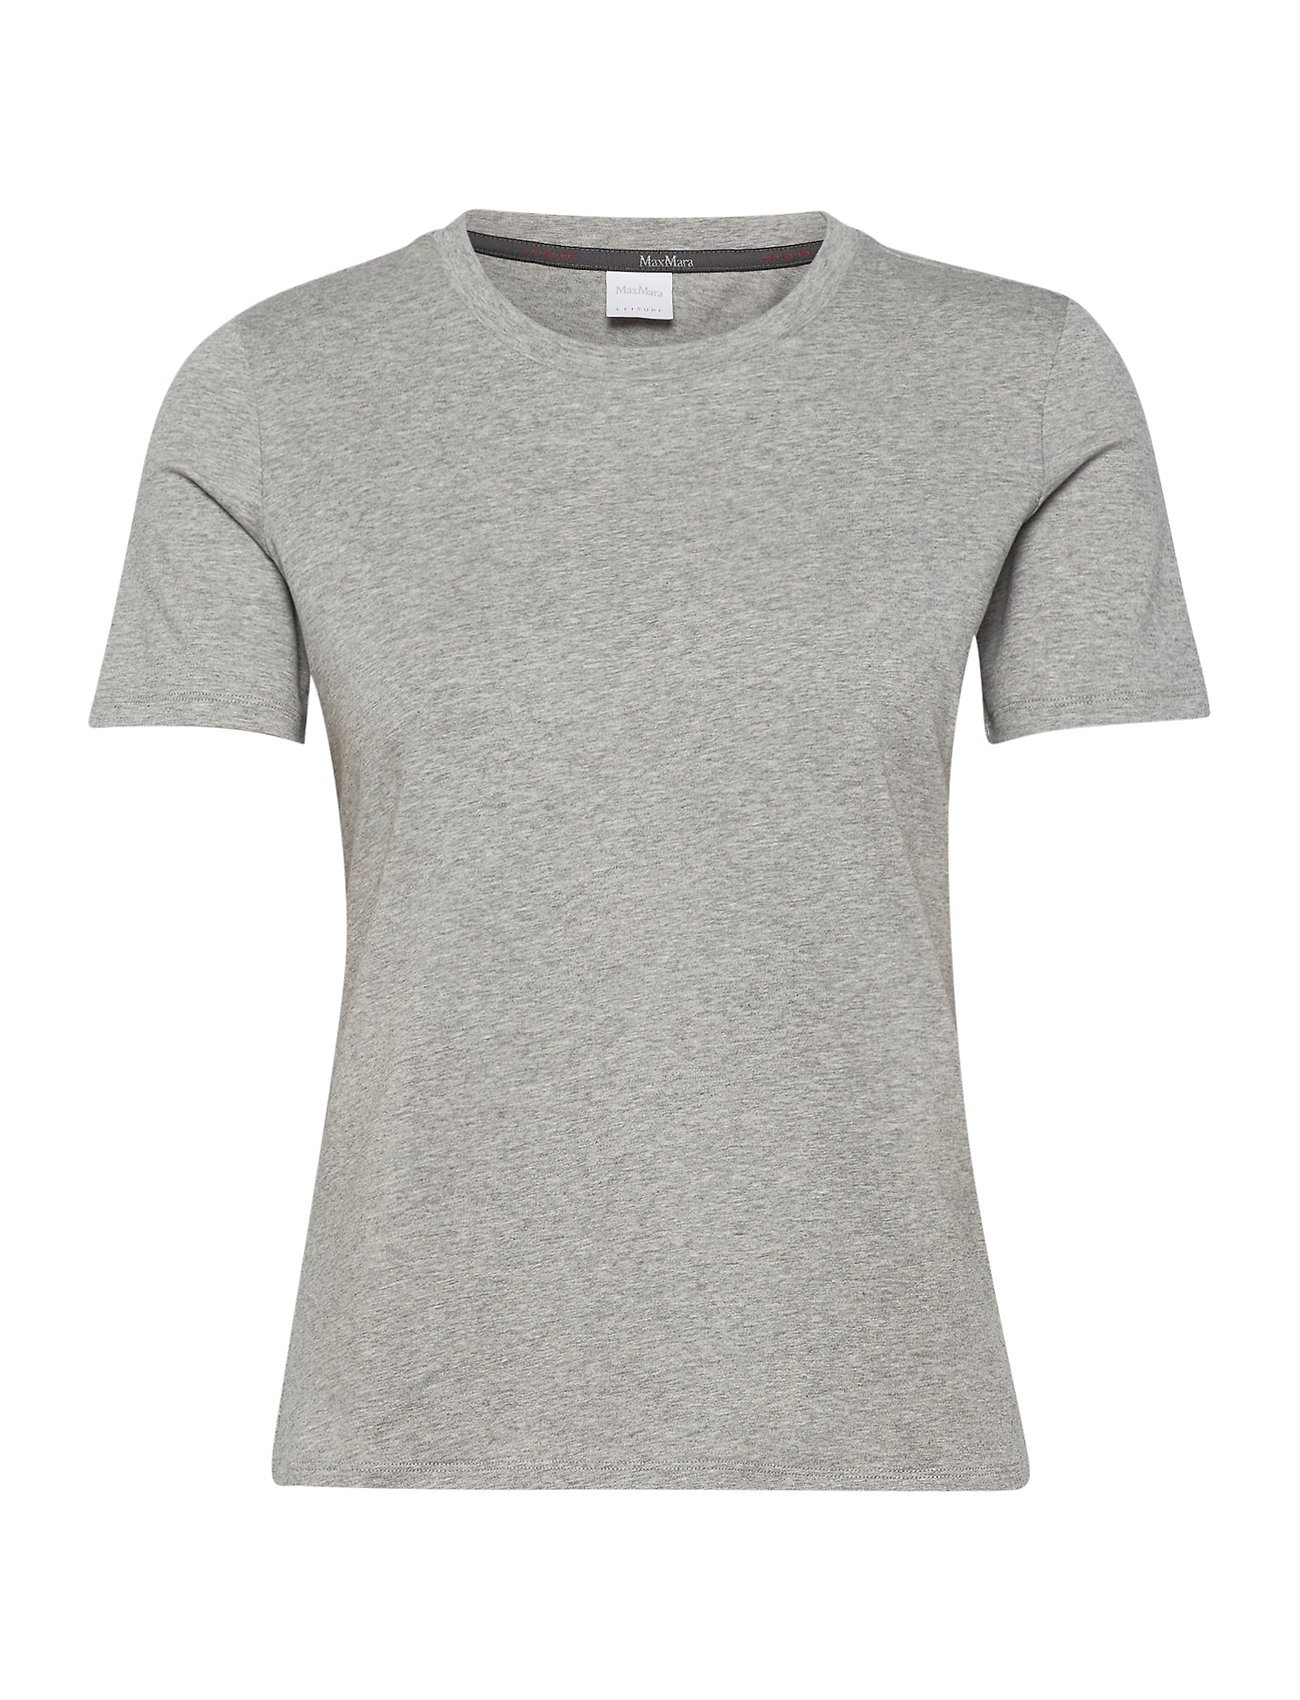 Image of Vagare T-shirt Top Grå Max Mara Leisure (3430432873)